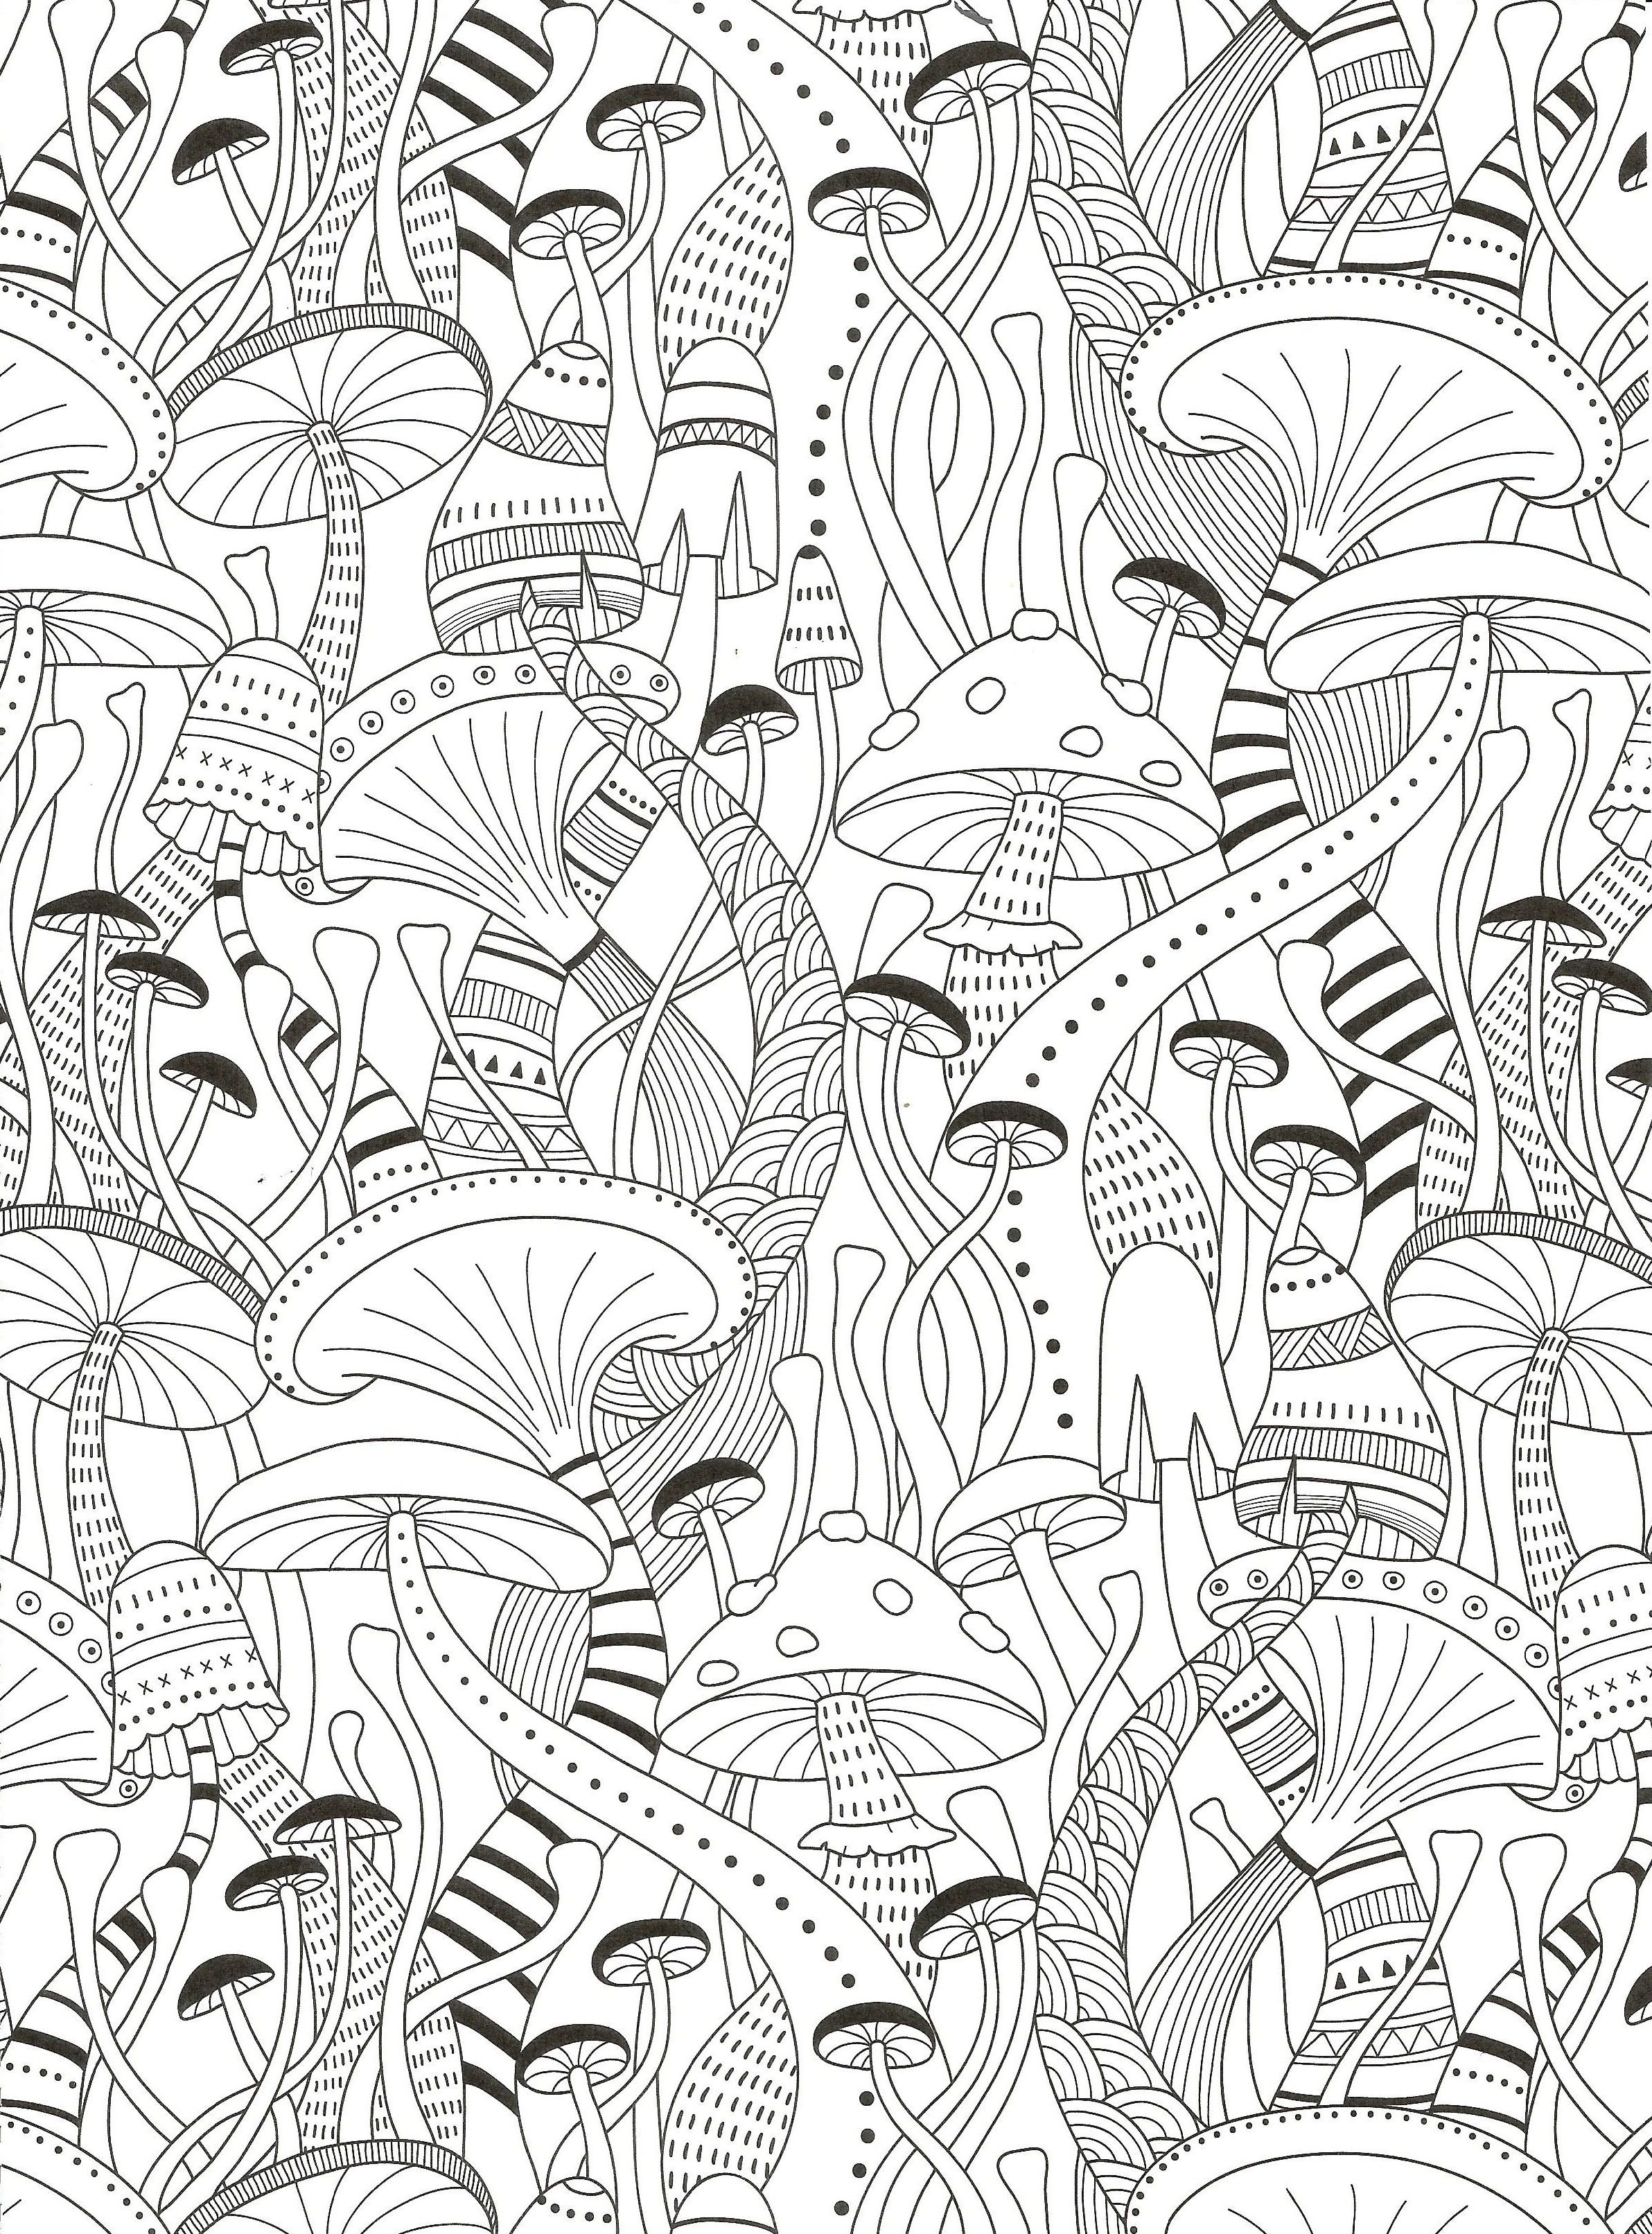 Ausmalbilder Pilze Herbst : Mushrooms Coloring Page For Adults Crafting Style Crafts